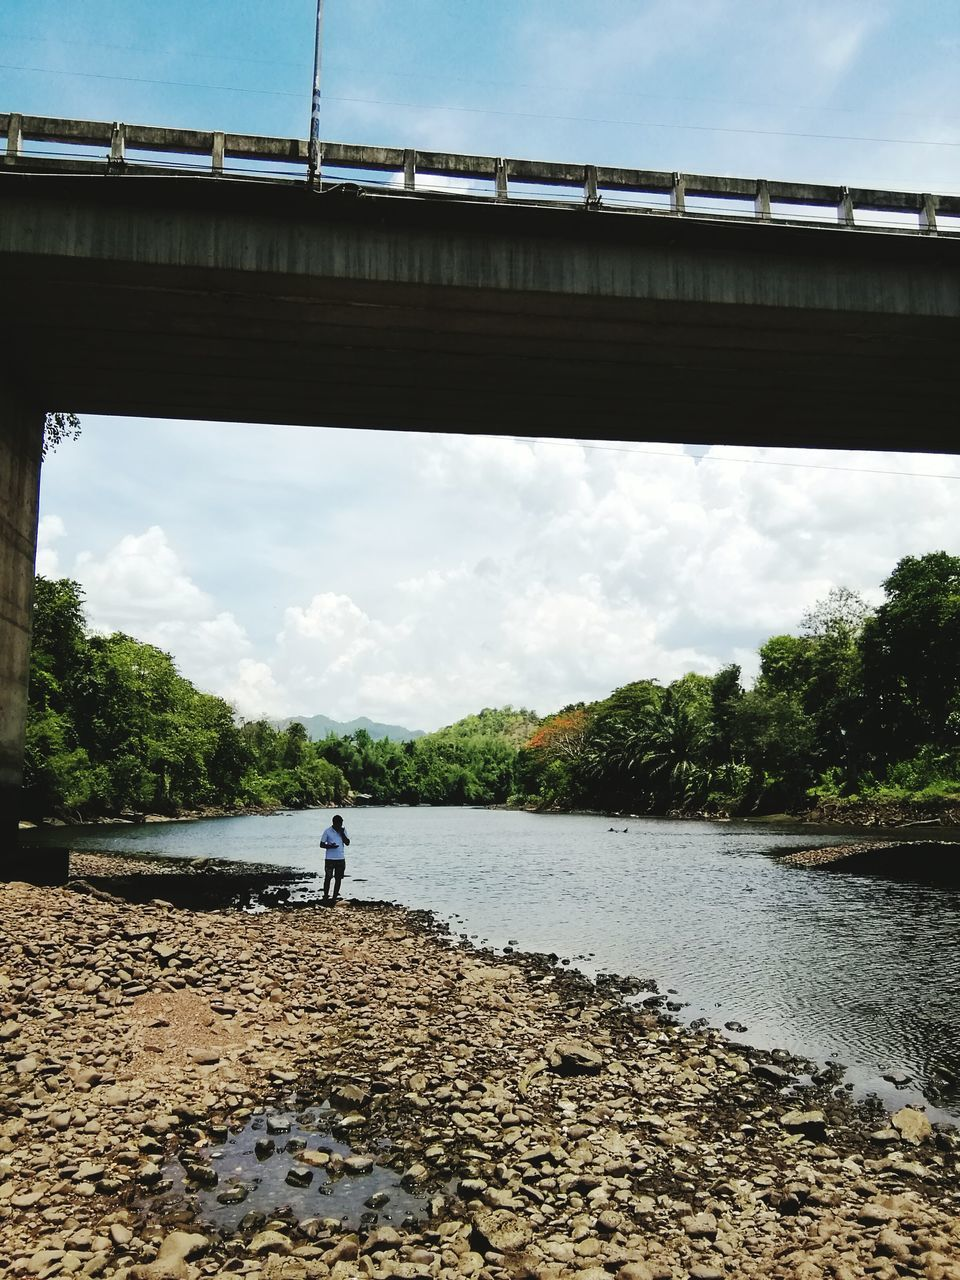 bridge - man made structure, connection, sky, river, cloud - sky, real people, day, architecture, water, rear view, one person, full length, built structure, outdoors, standing, nature, transportation, leisure activity, men, tree, lifestyles, under, people